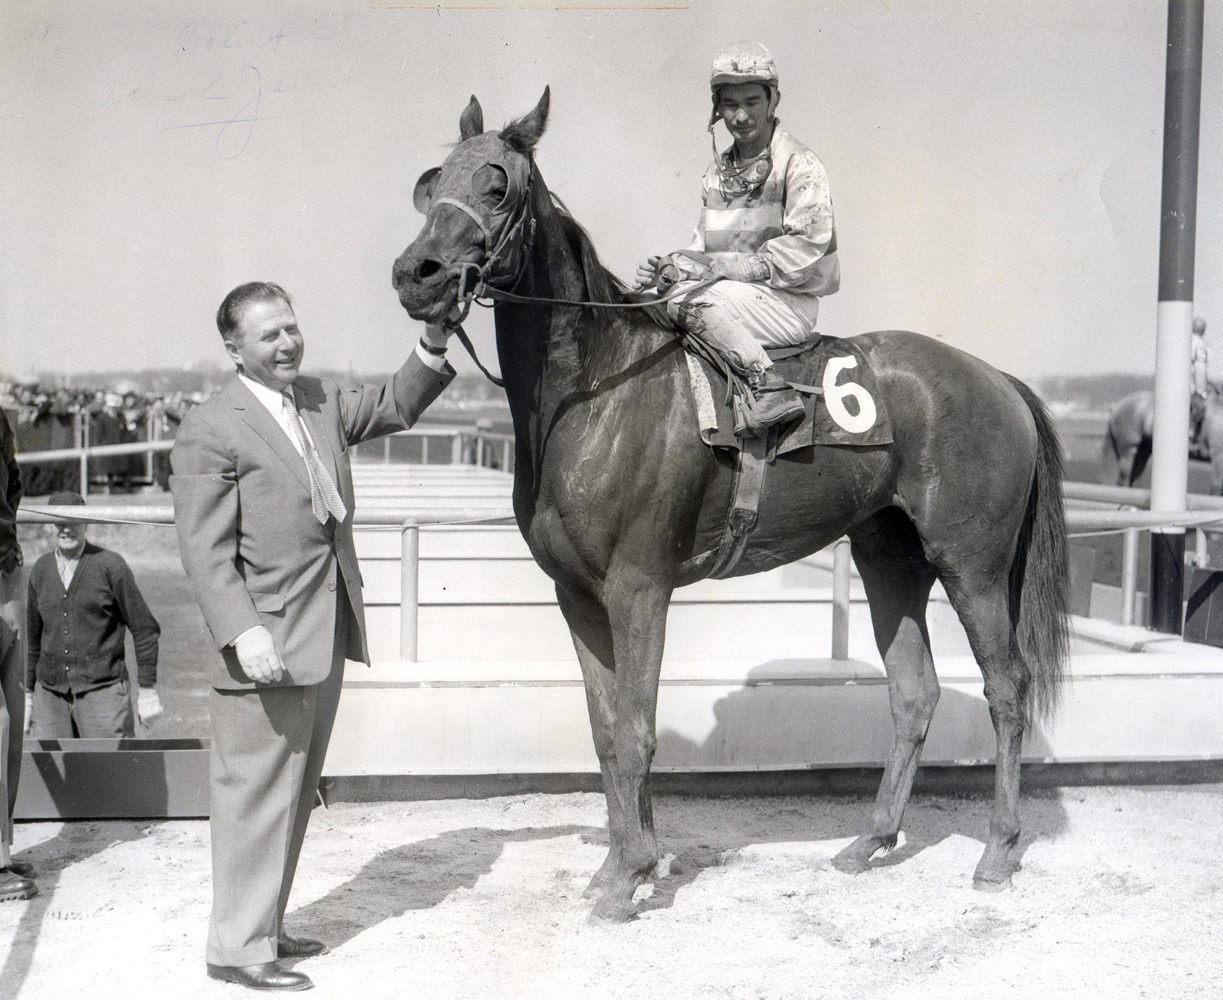 Hirsch Jacobs celebrates his 3,000th career win with Blue Waters in April 1960 (Bert and Richard Morgan/Museum Collection)